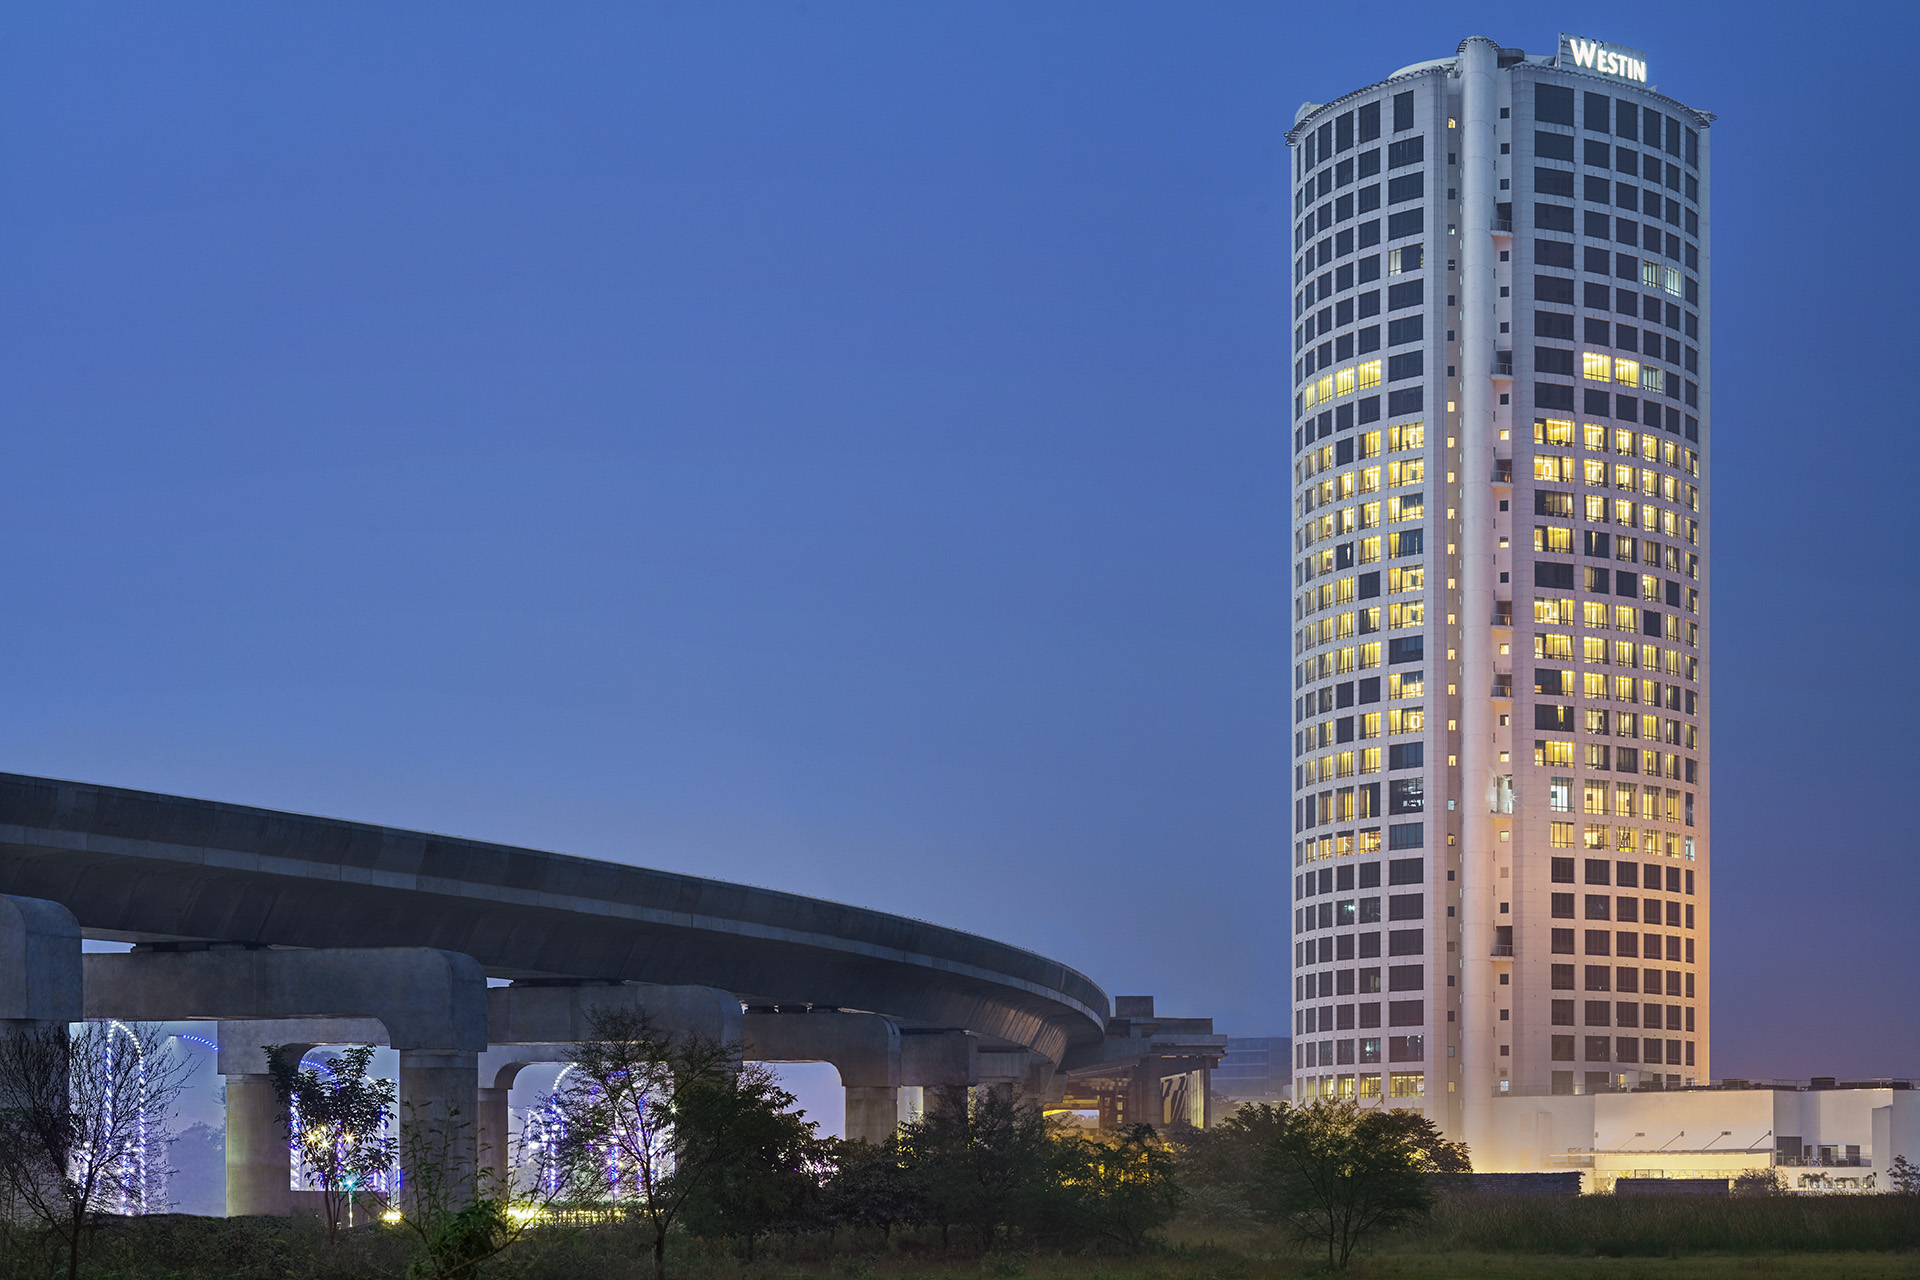 The Westin Kolkata Rajarhat